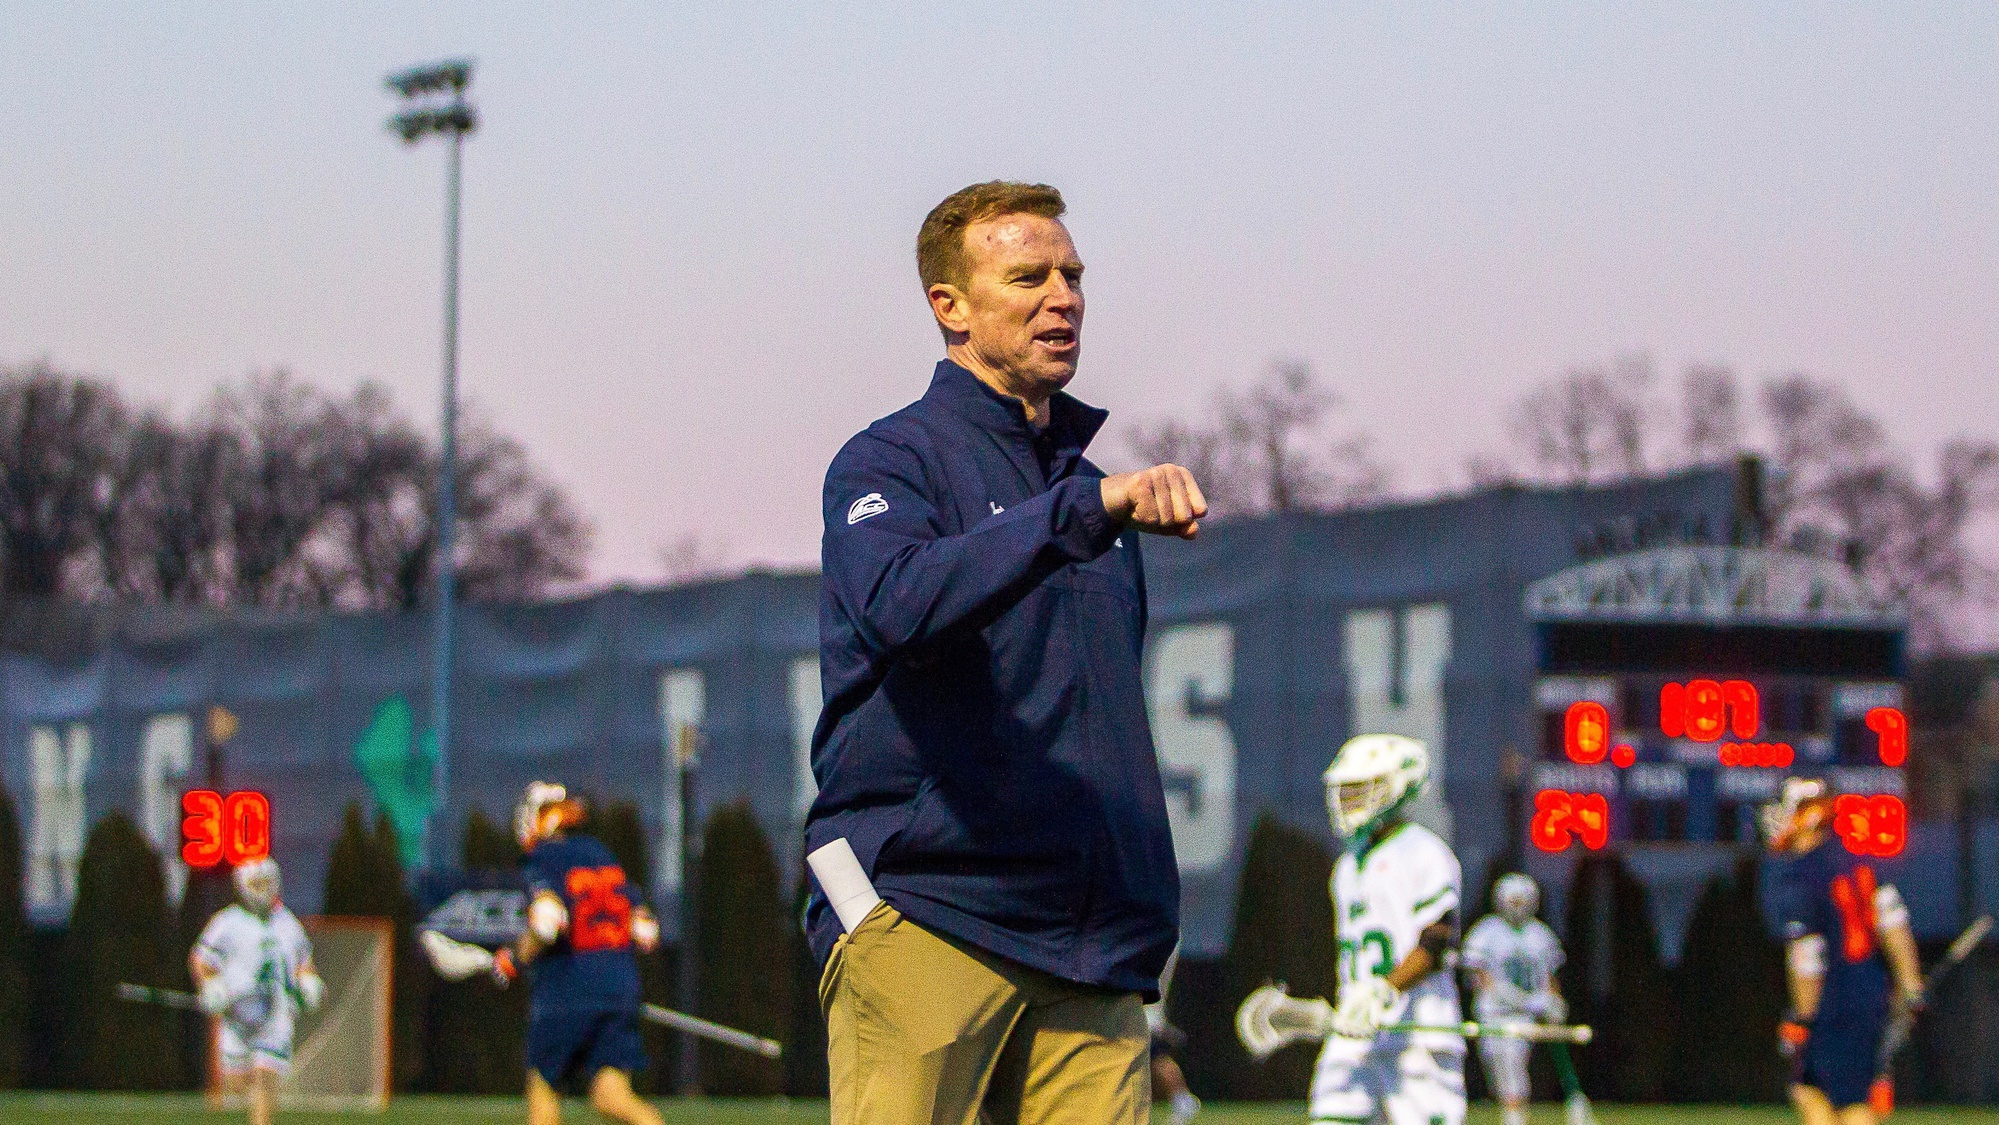 Coach Gerry Byrne was previously an assistant coach at Notre Dame before taking over the program at Harvard.